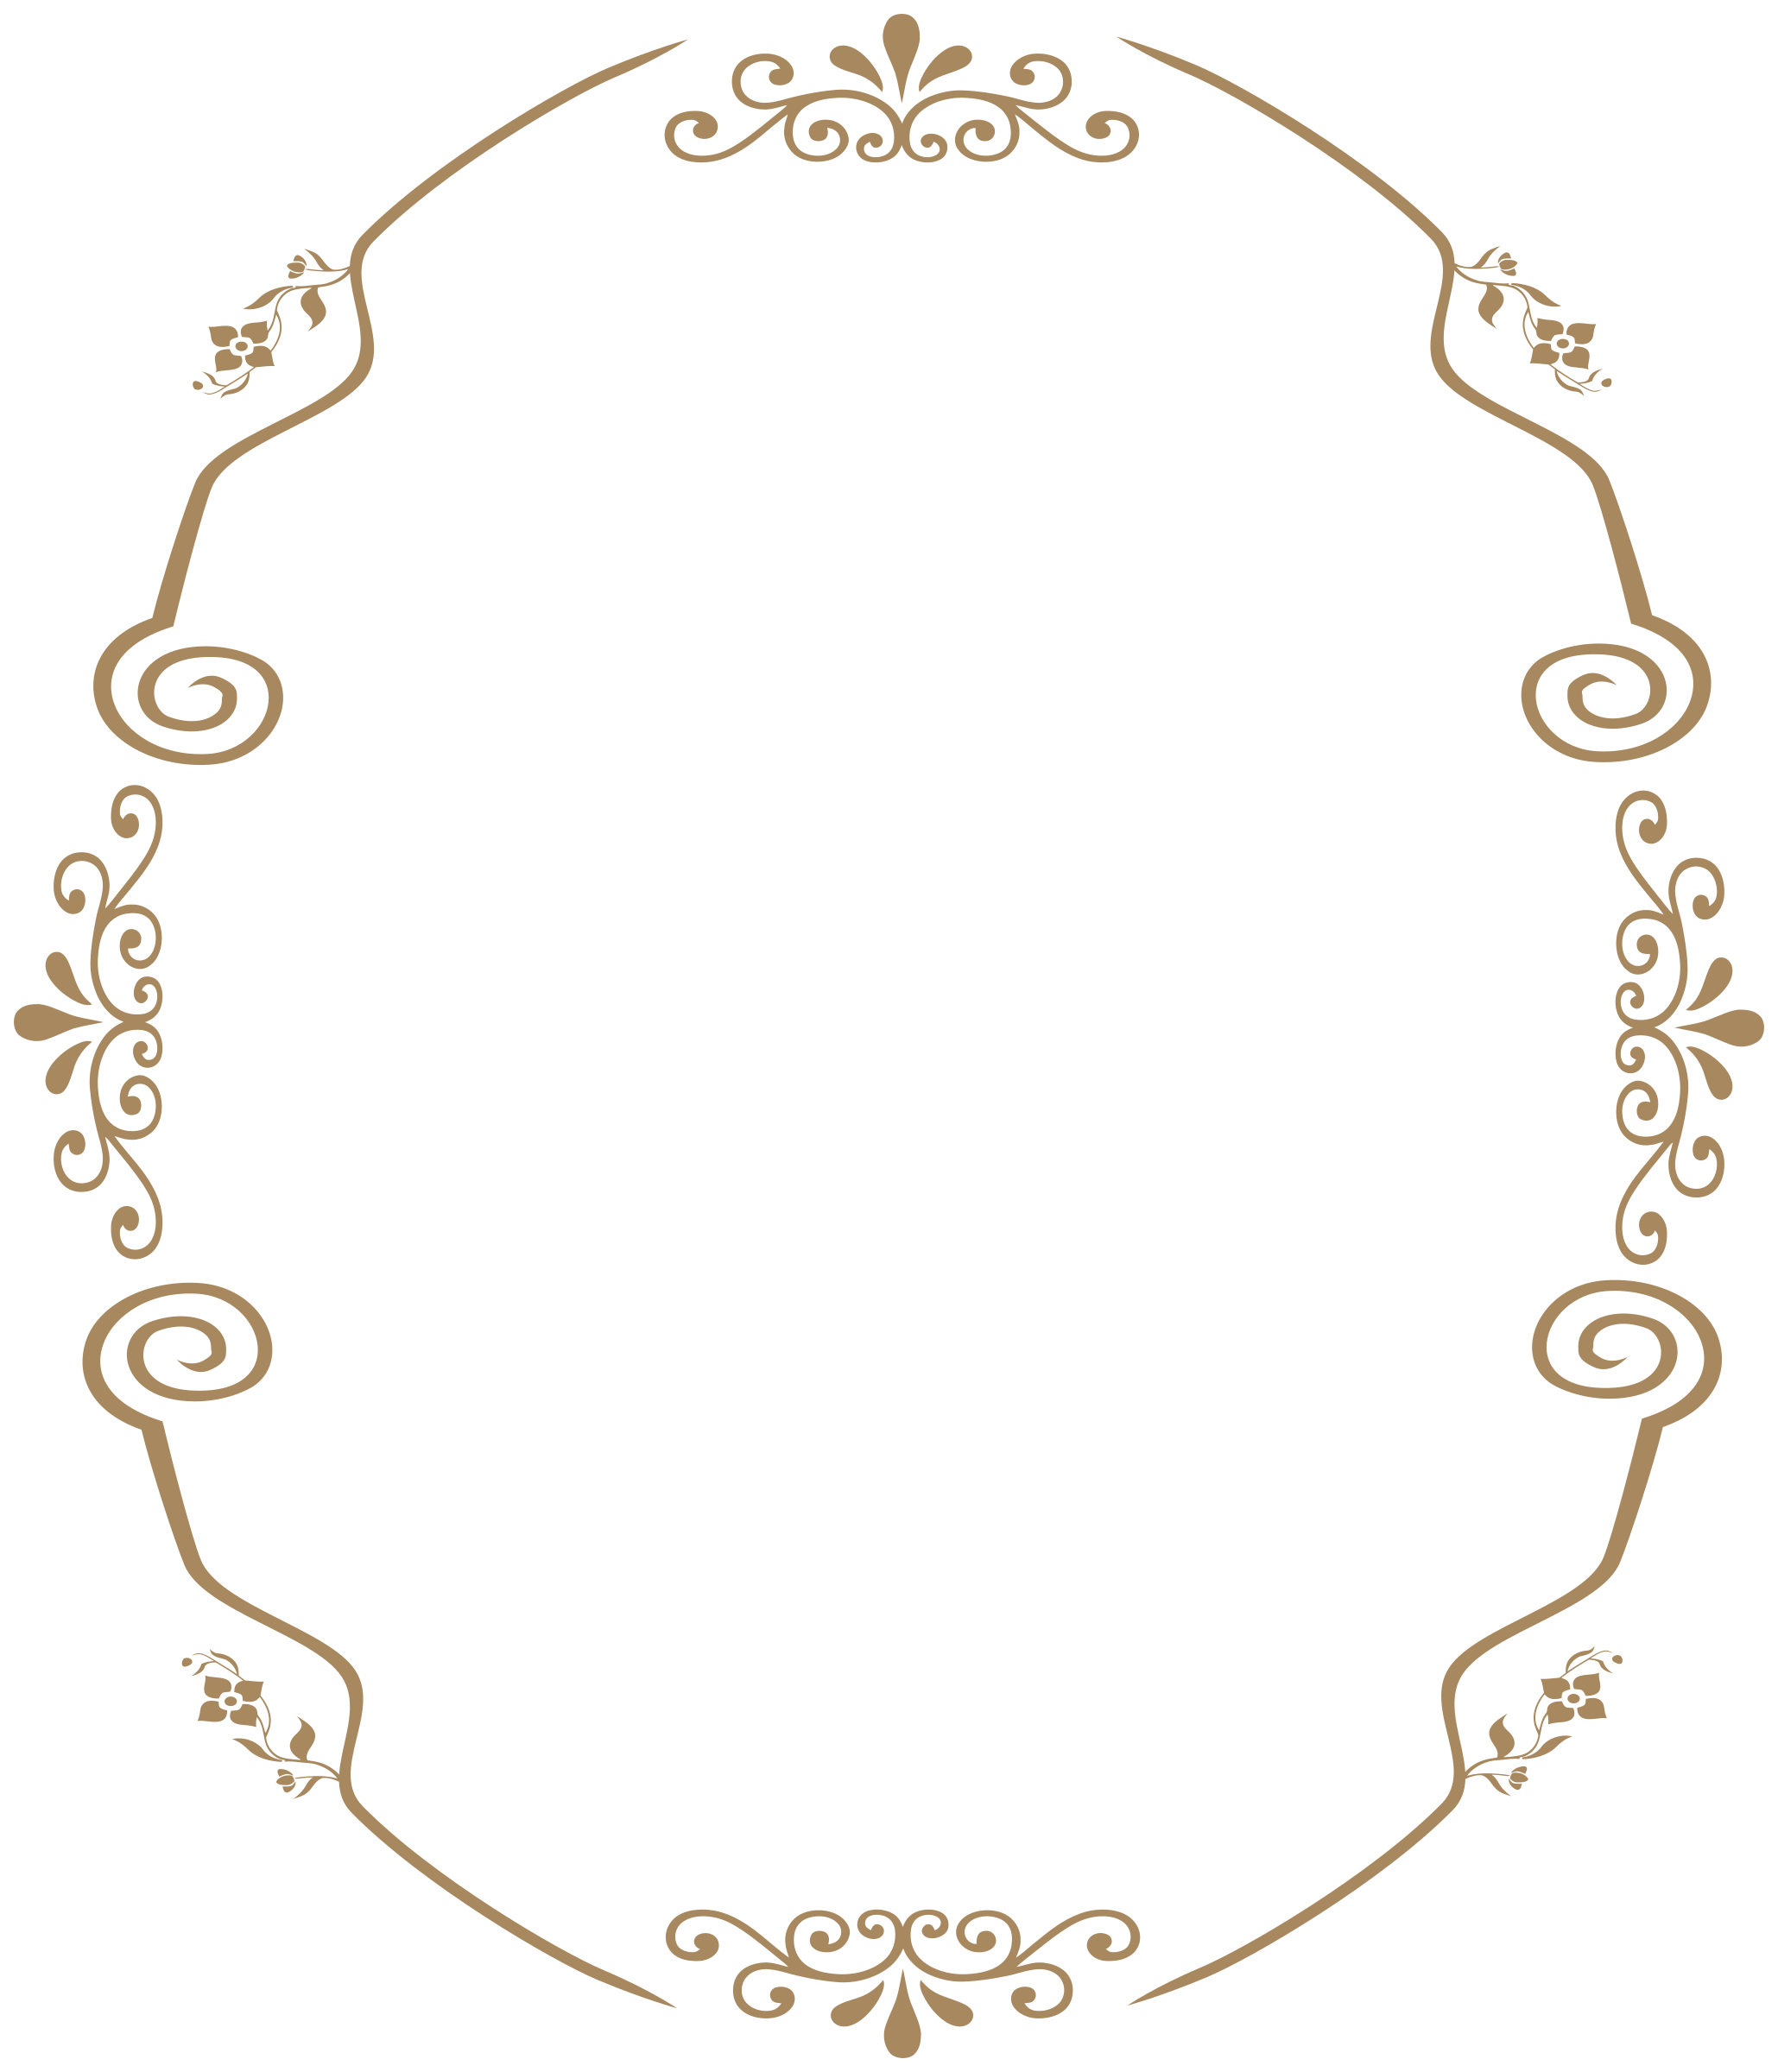 Oval Remix Of Decorative Vintage Style Frame